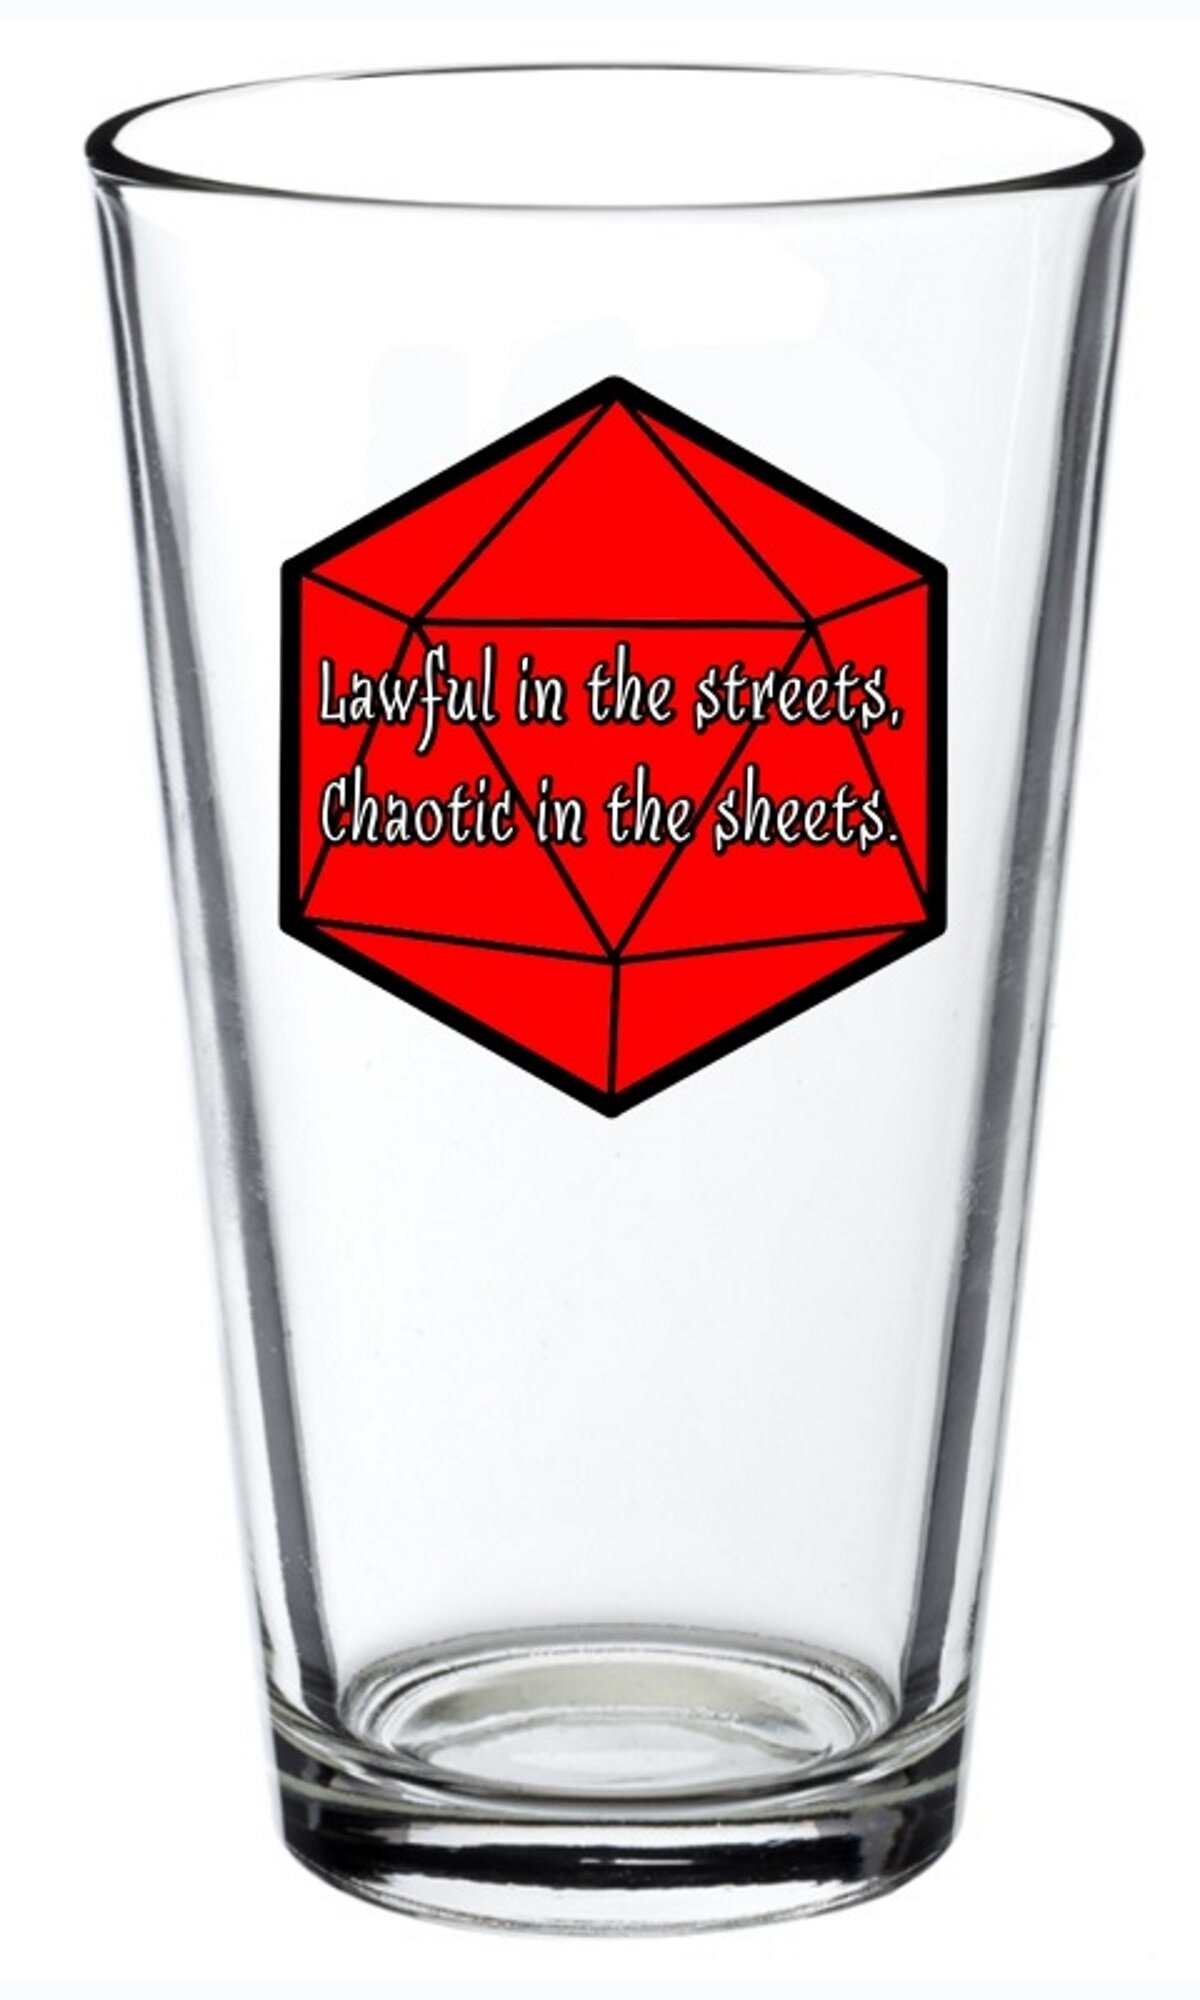 Lawful in the Streets, Chaotic in the Sheets.